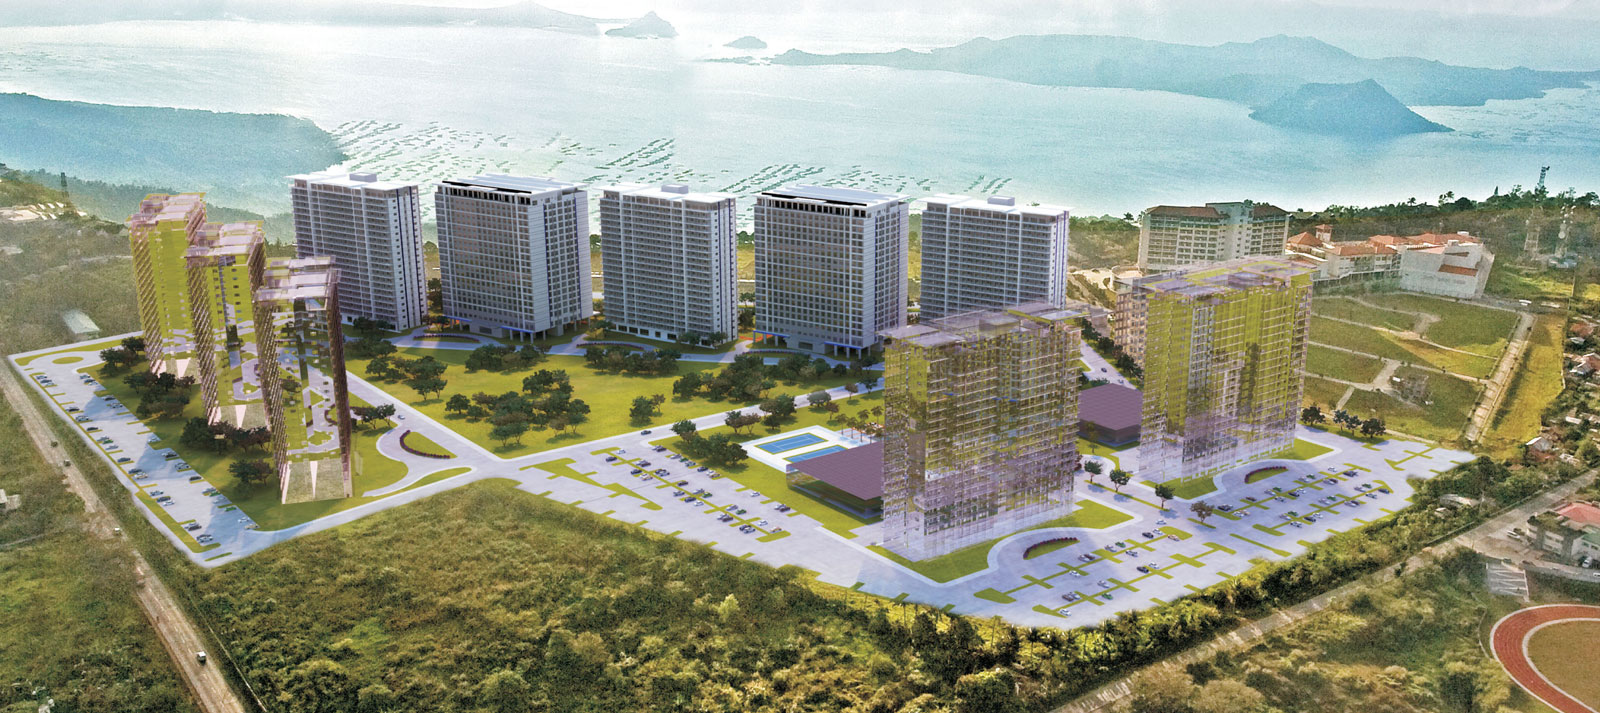 smdc wind residences - tagaytay, philippines - development plan